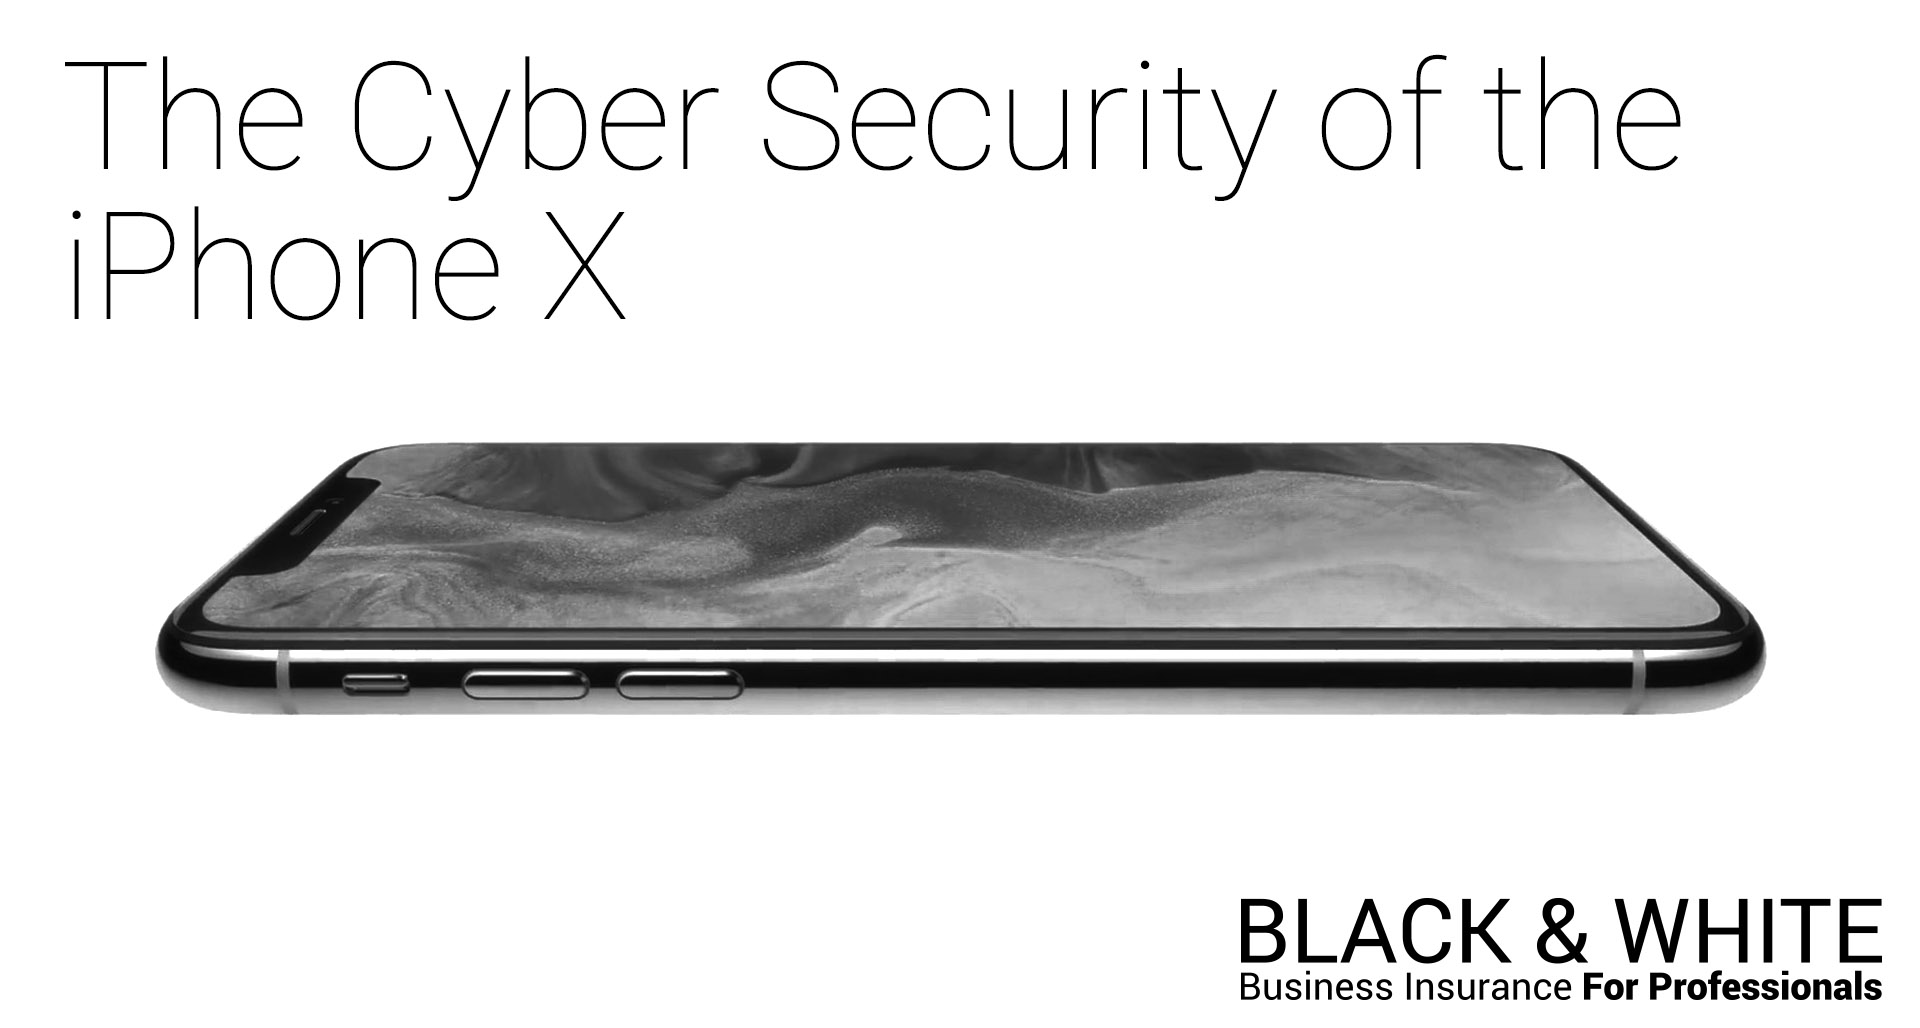 The Cyber Security of iPhone X